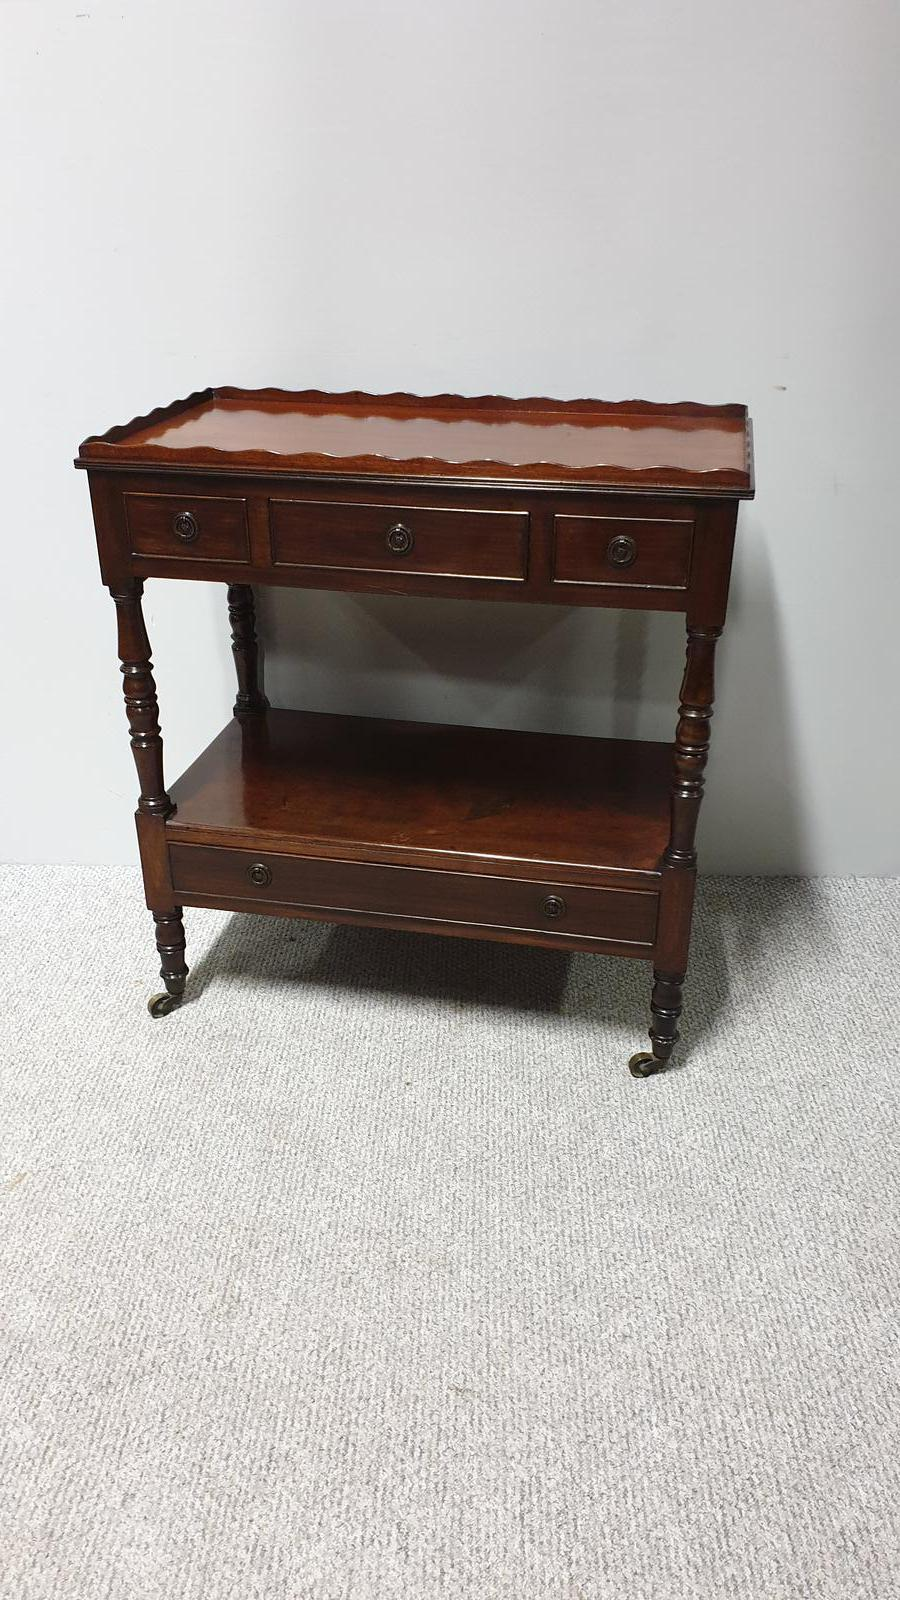 Good Mahogany Two Tier Trolley (1 of 1)